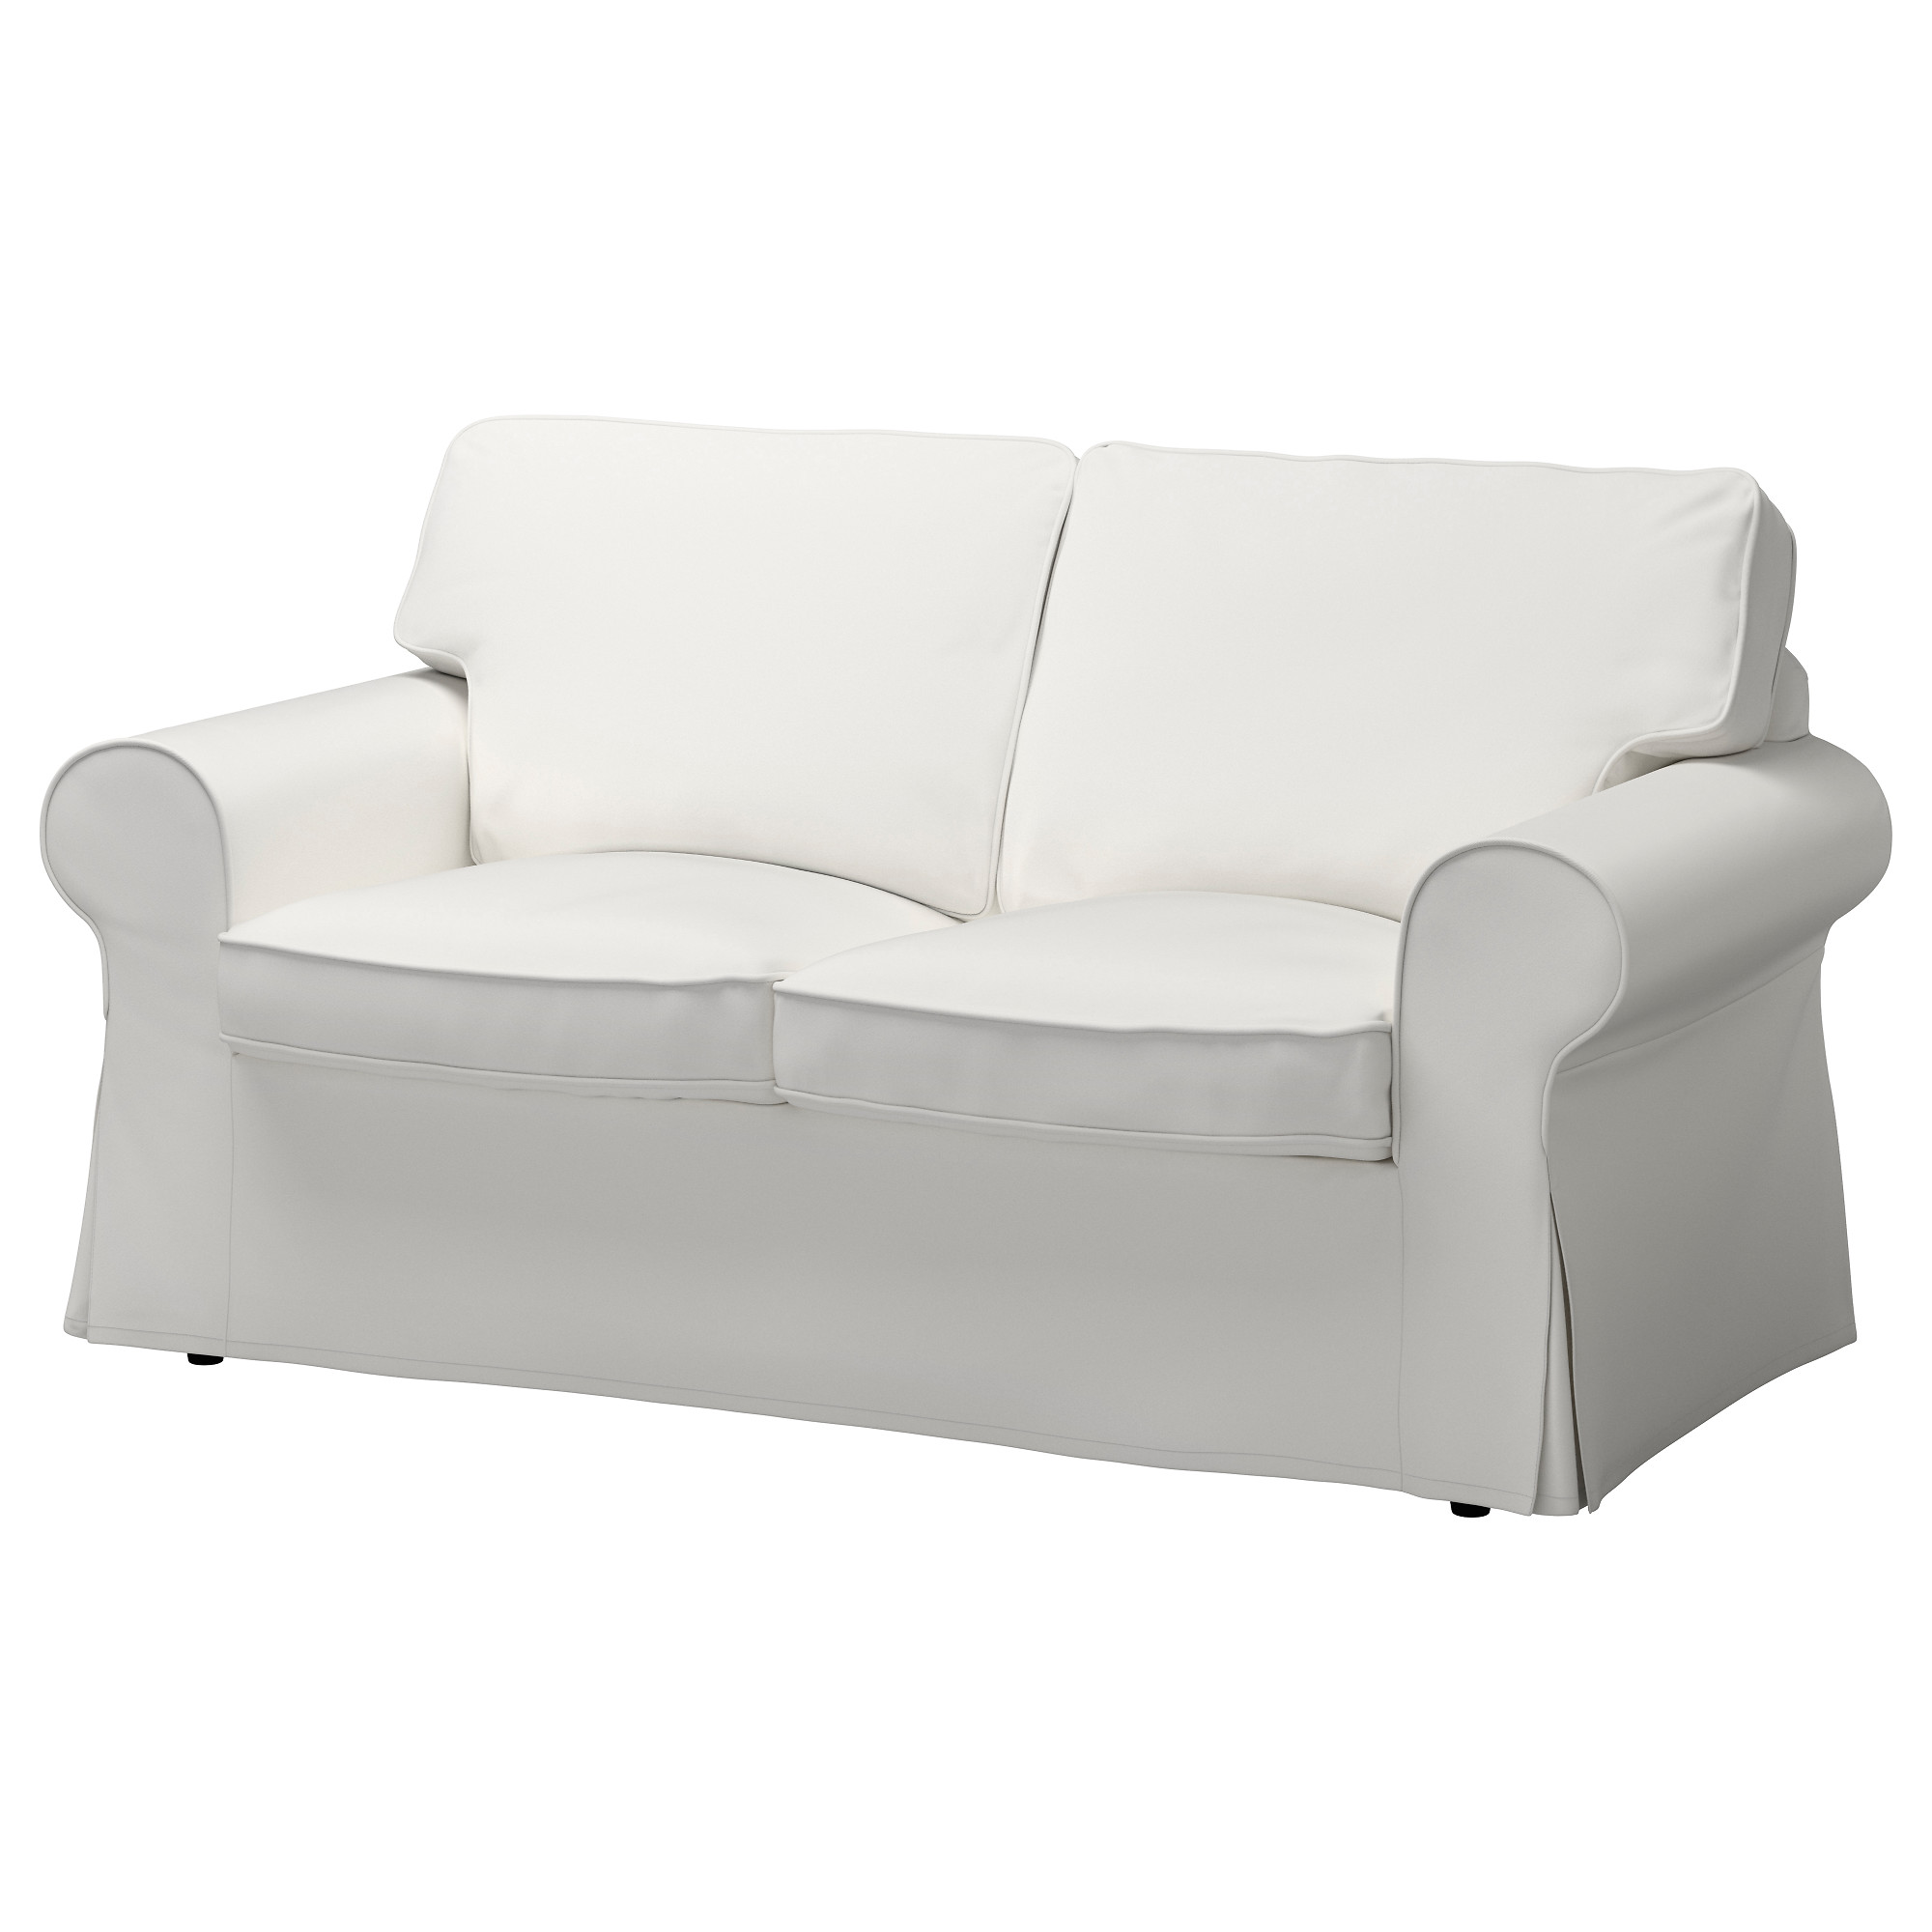 fabric sofas  modern  contemporary  ikea - ektorp loveseat vittaryd white width    depth